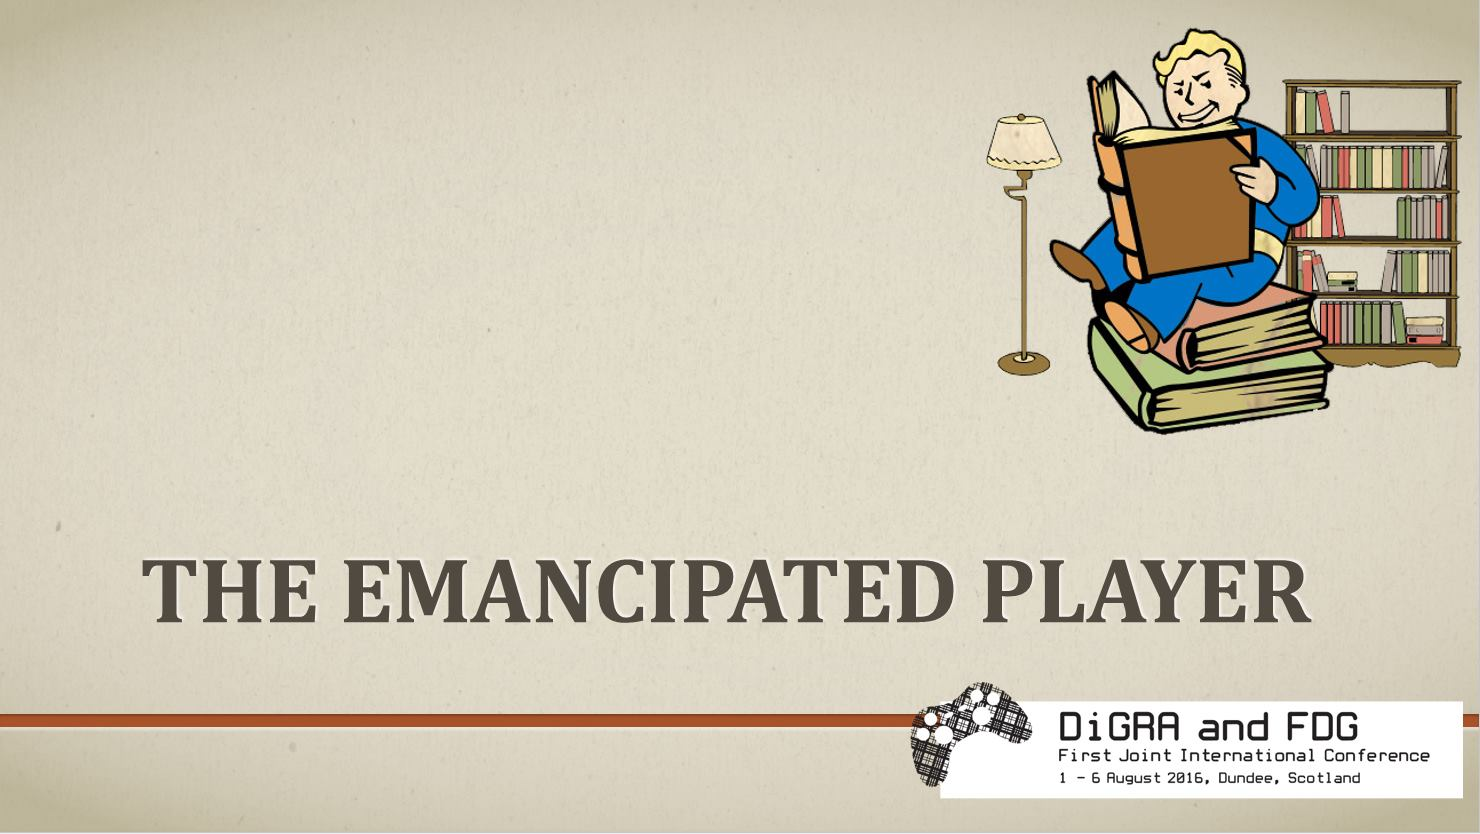 The Emancipated Player